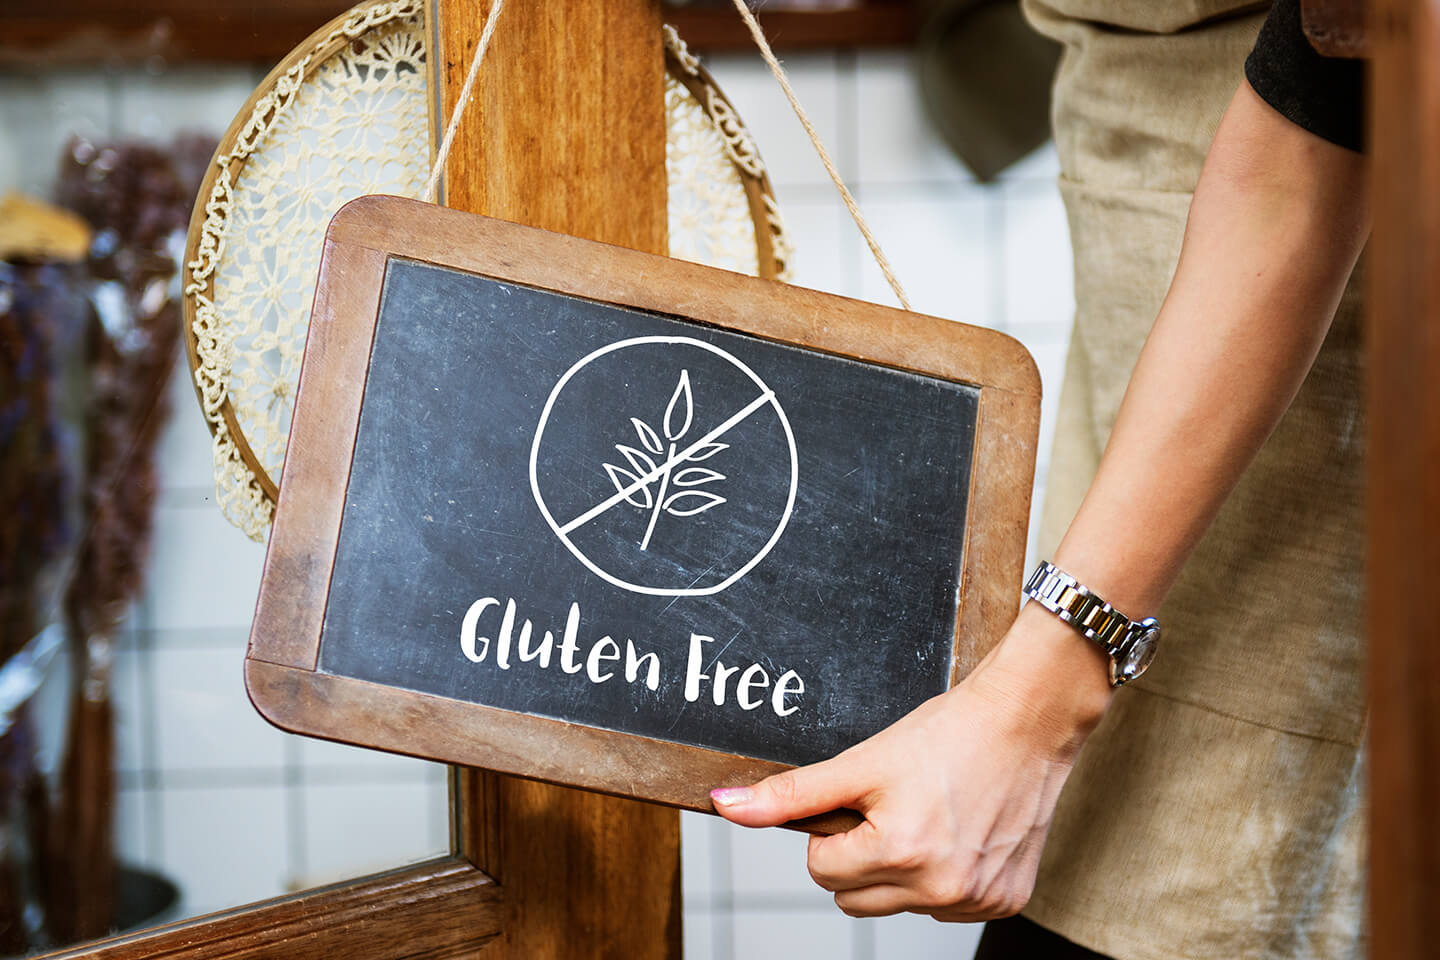 Gluten-free diets have become commonplace among restaurant customers.